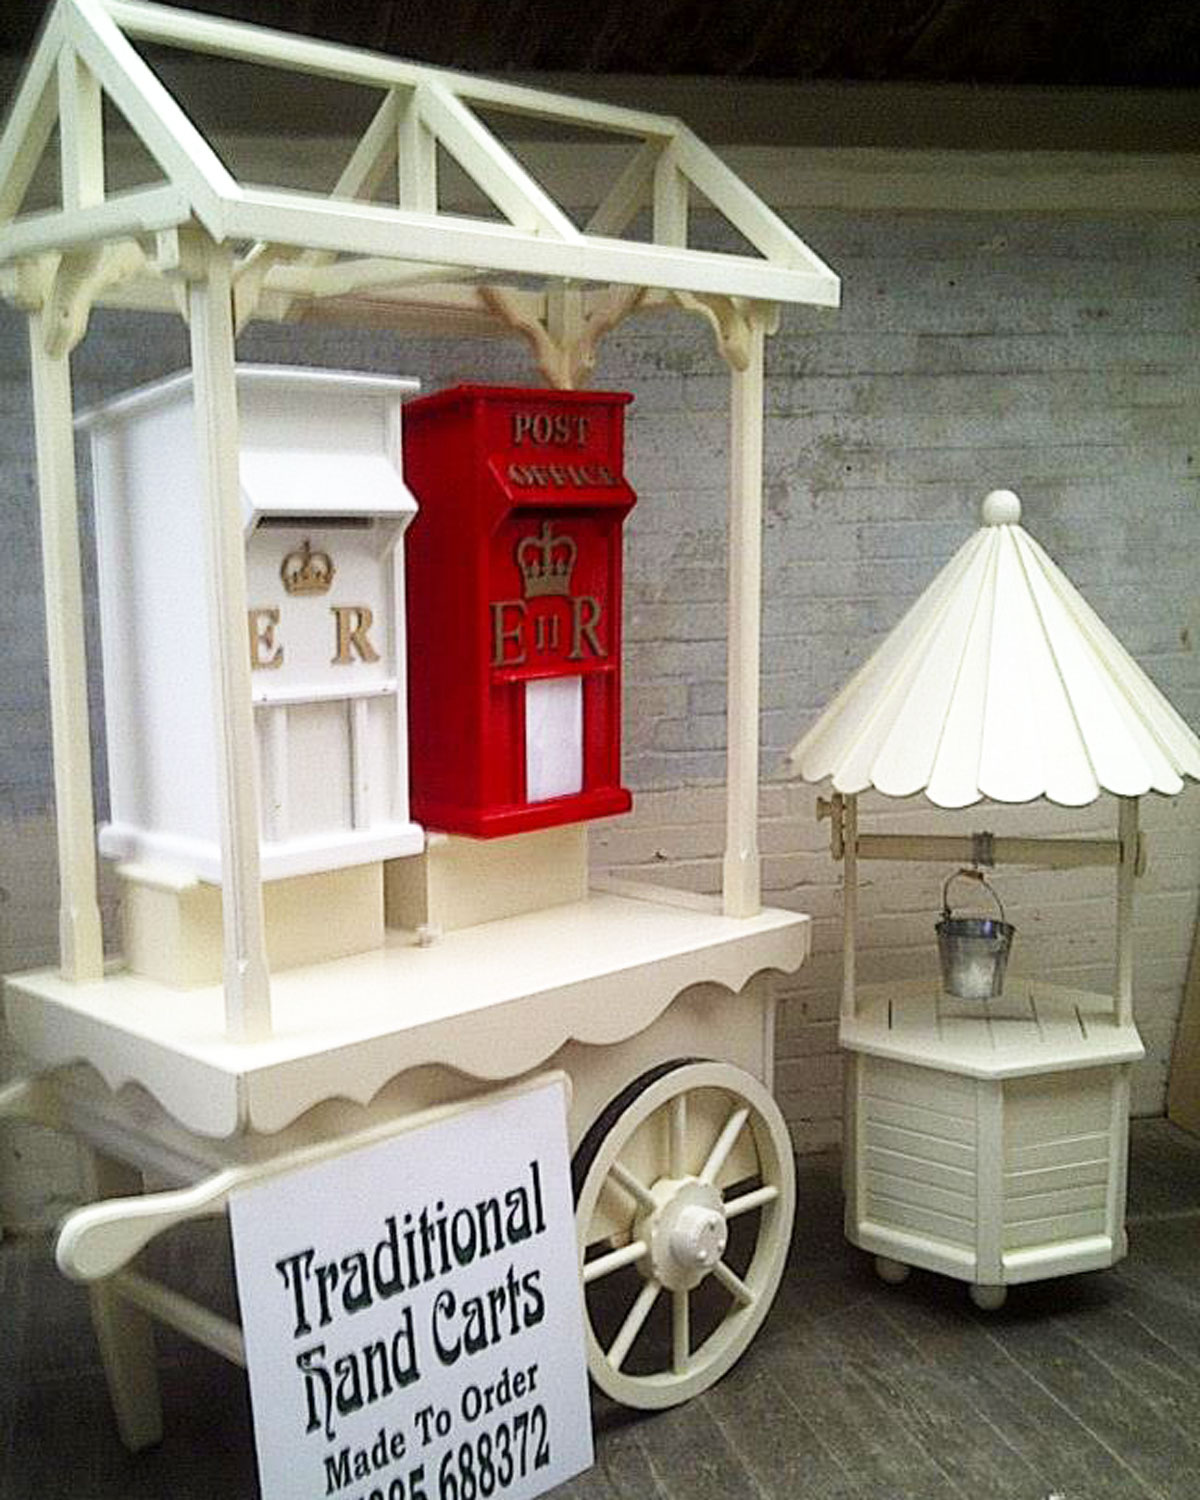 Wedding Gift Post Boxes Uk : Custom weddings package including gift post boxes, cart and wishing ...